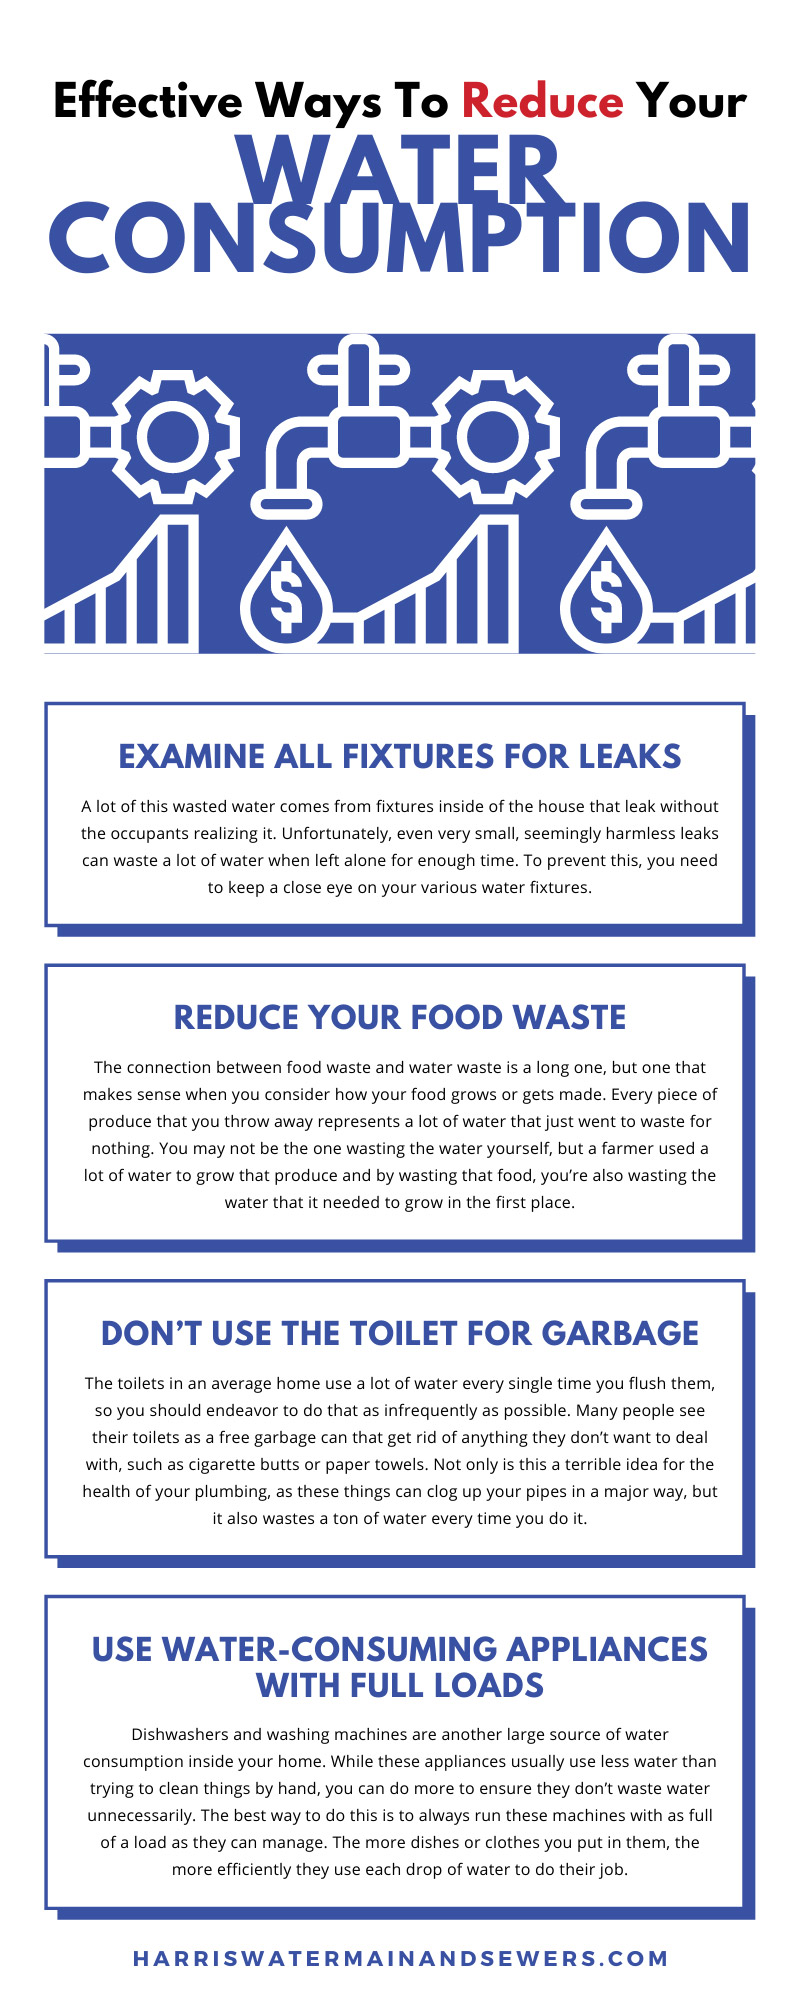 Effective Ways To Reduce Your Water Consumption